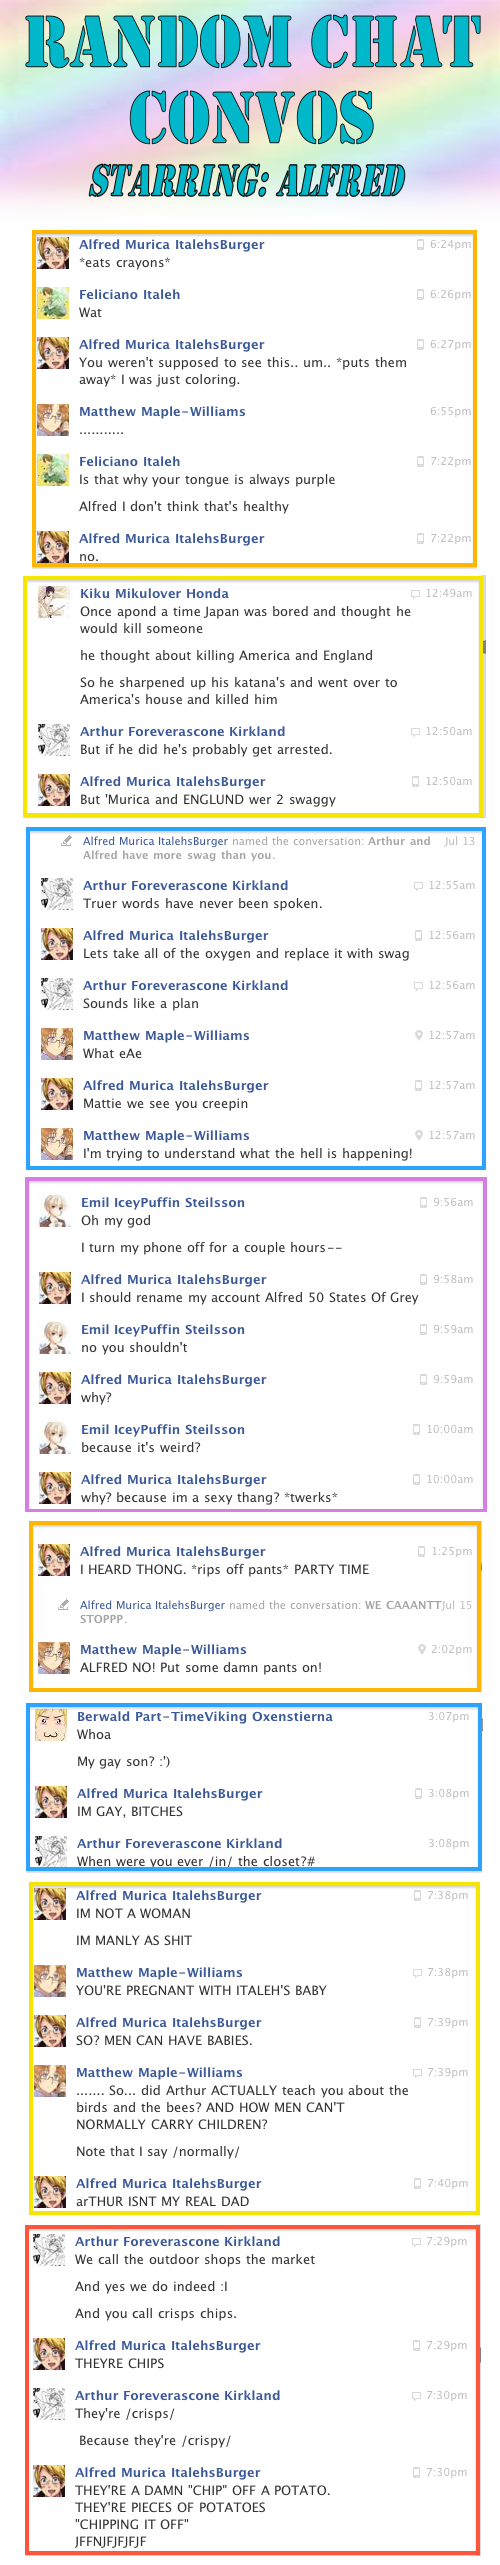 how to download all facebook group pictures at once